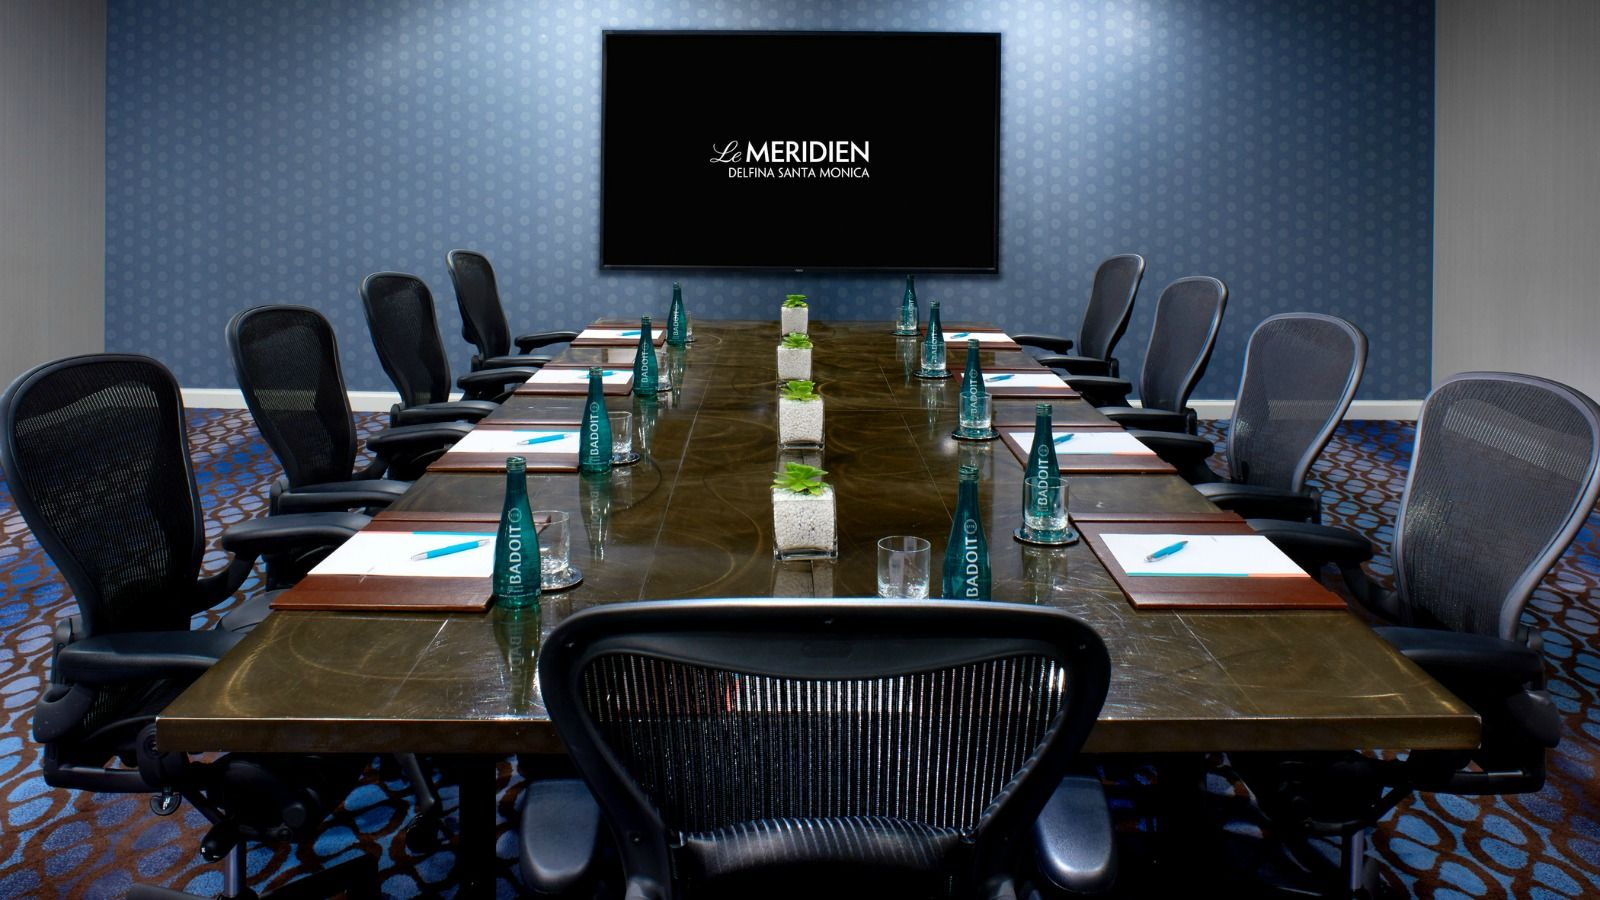 Le Meridien Delfina Santa Monica Meeting Space - Cabrilla